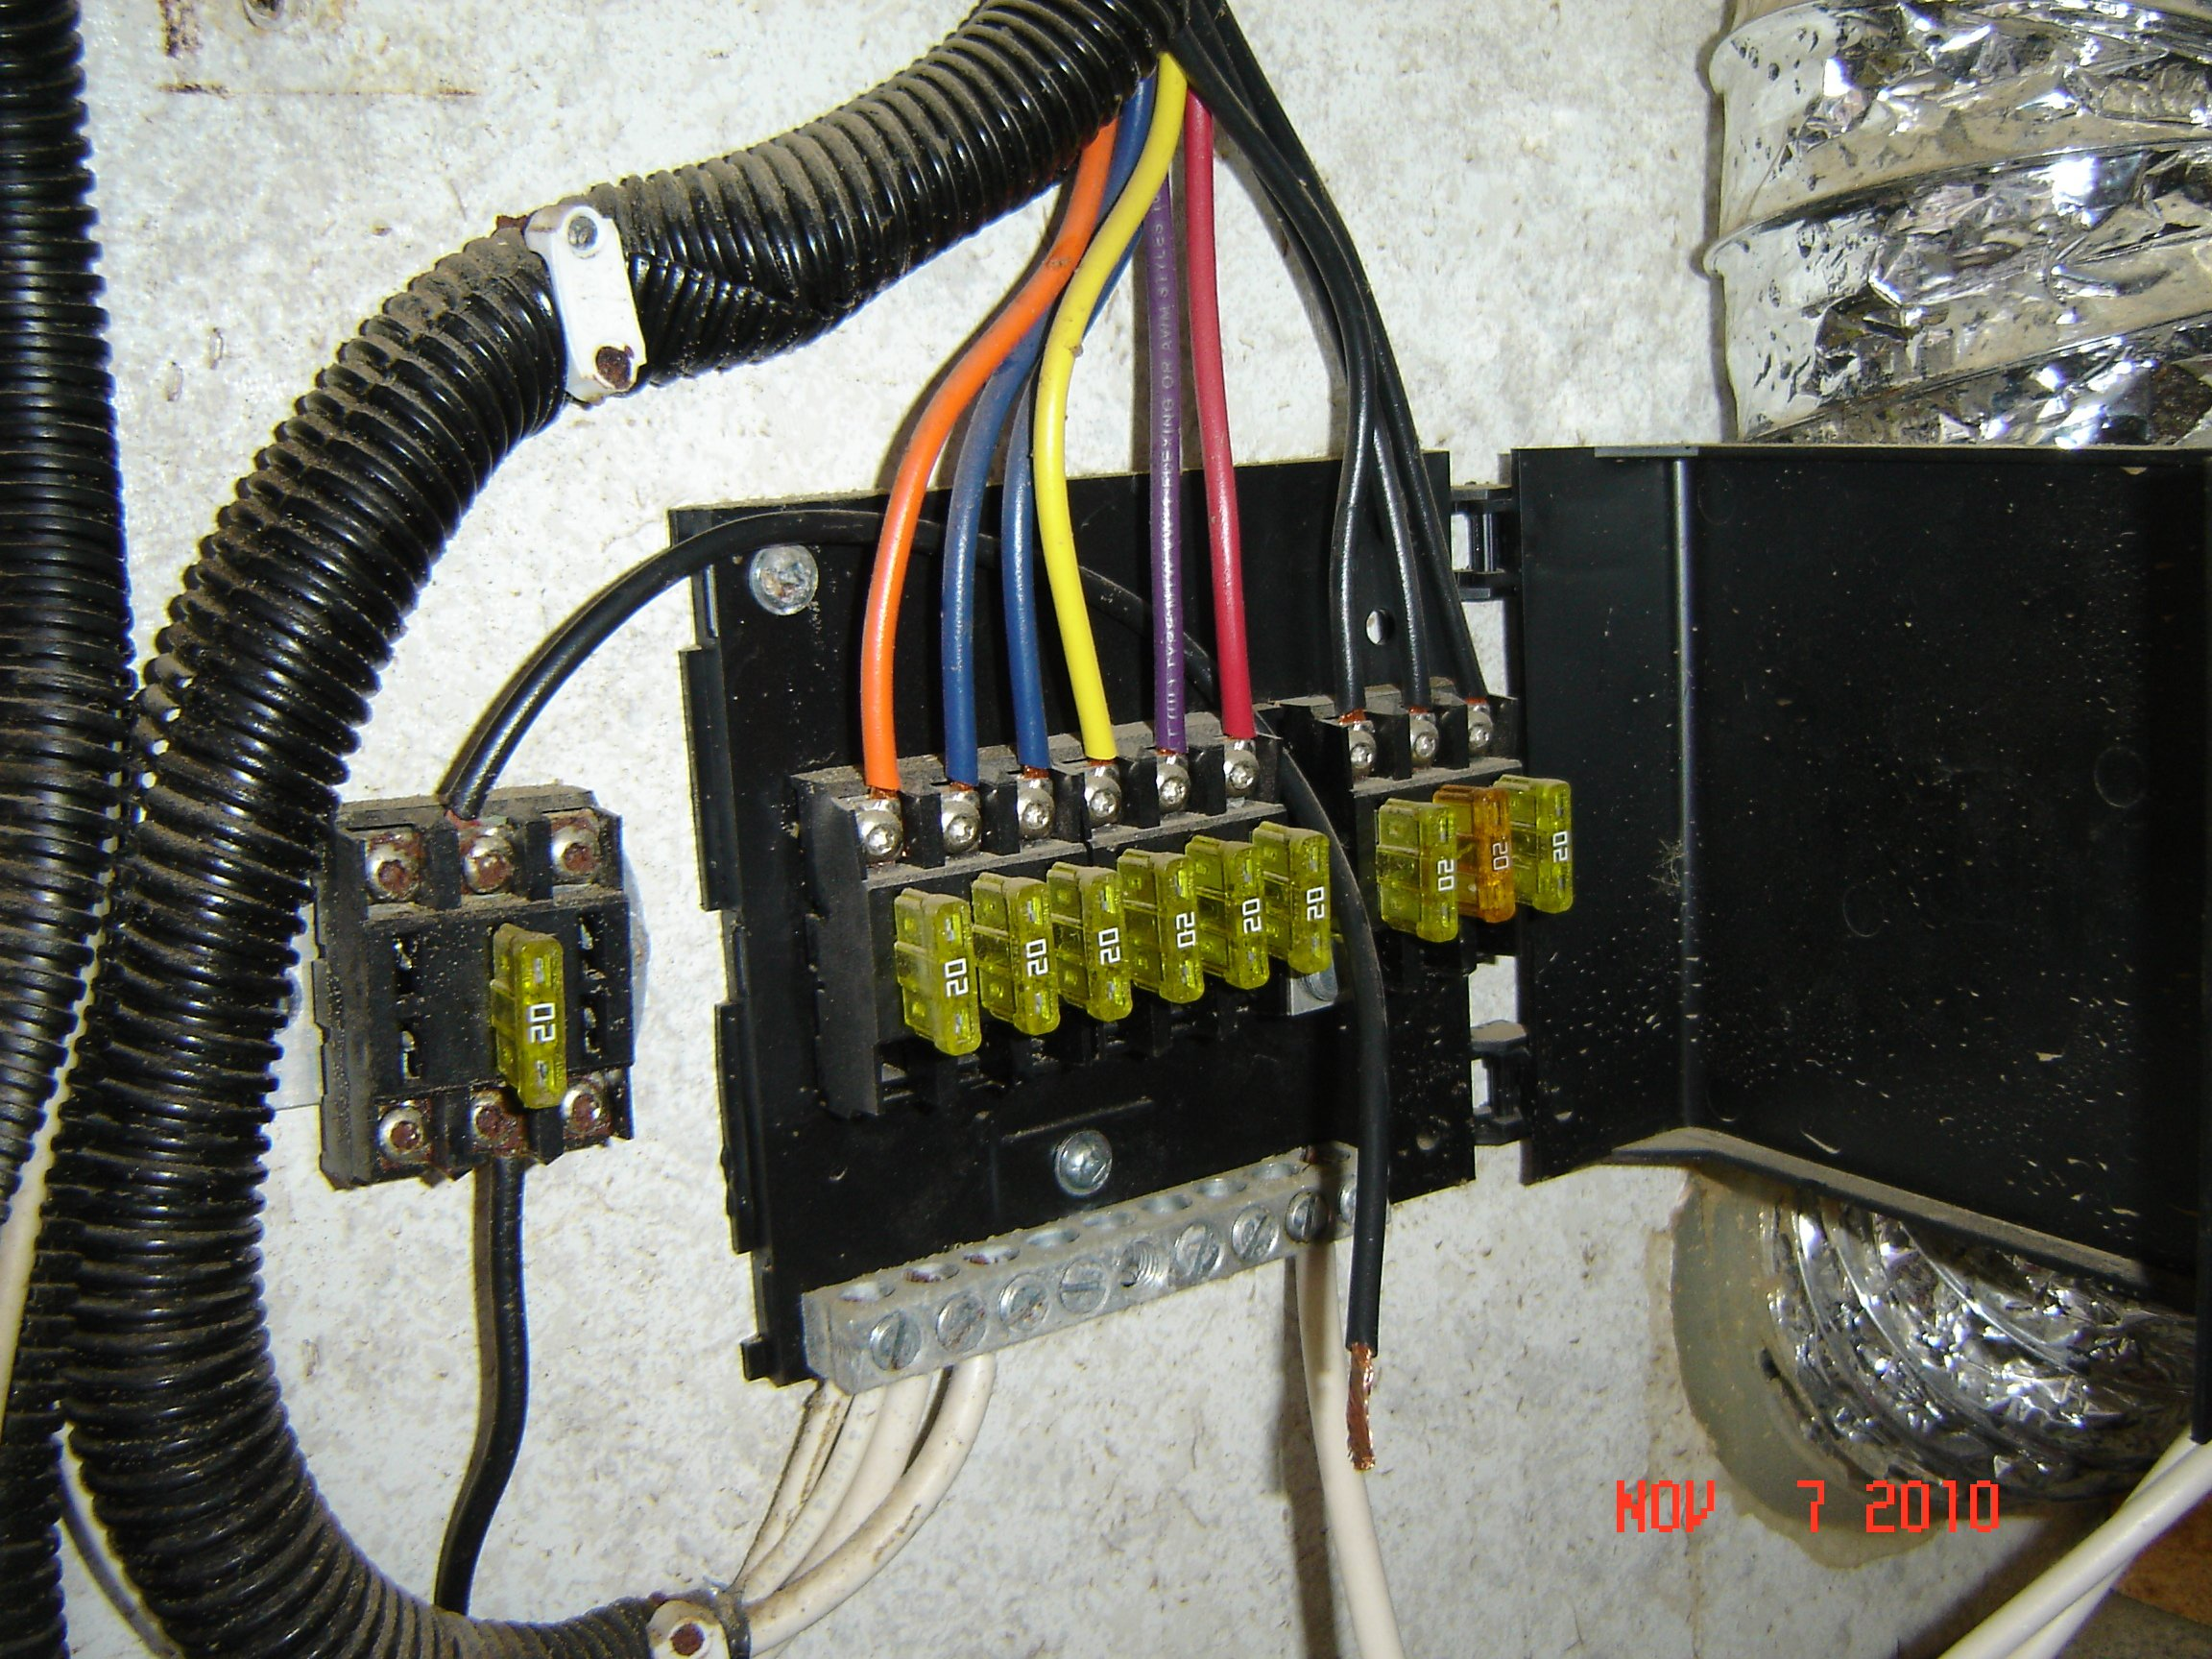 I Have A 2006 Ww Fs3000 And There Are Two 8 Awg Wires